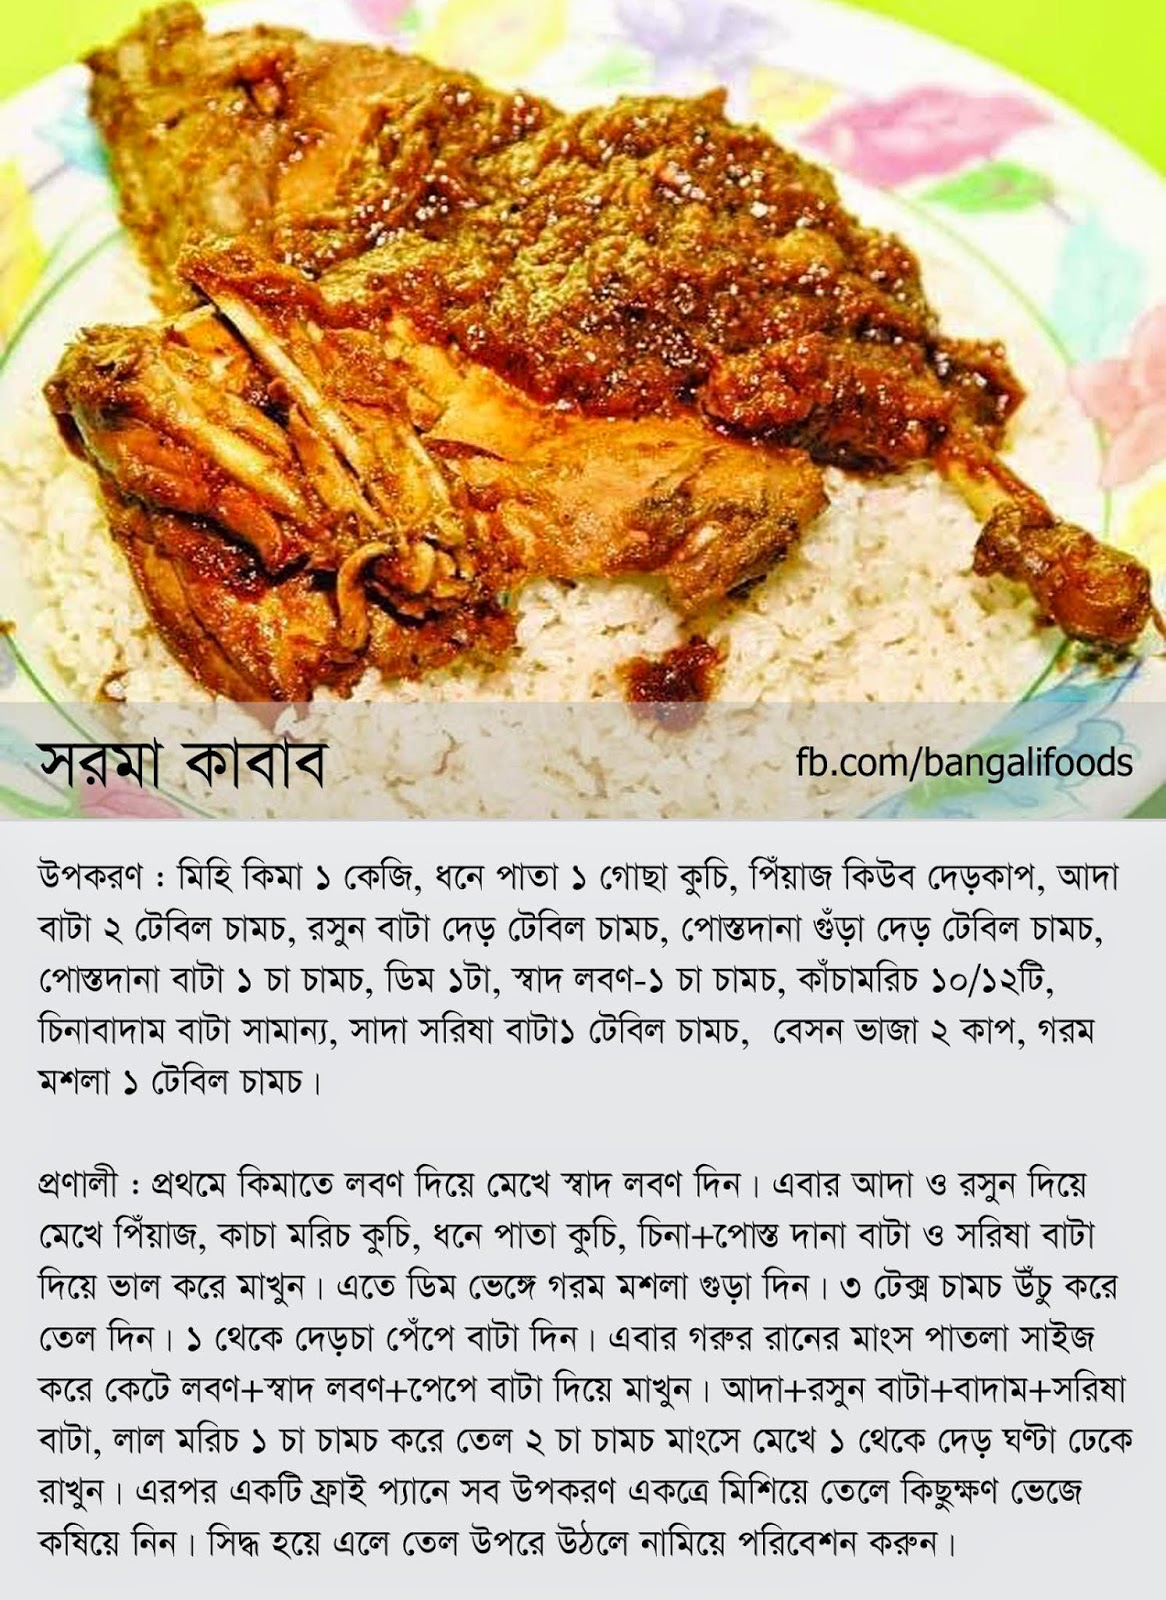 Chicken recipes in bengali language recipe chicken recipes in bengali language 20 forumfinder Images